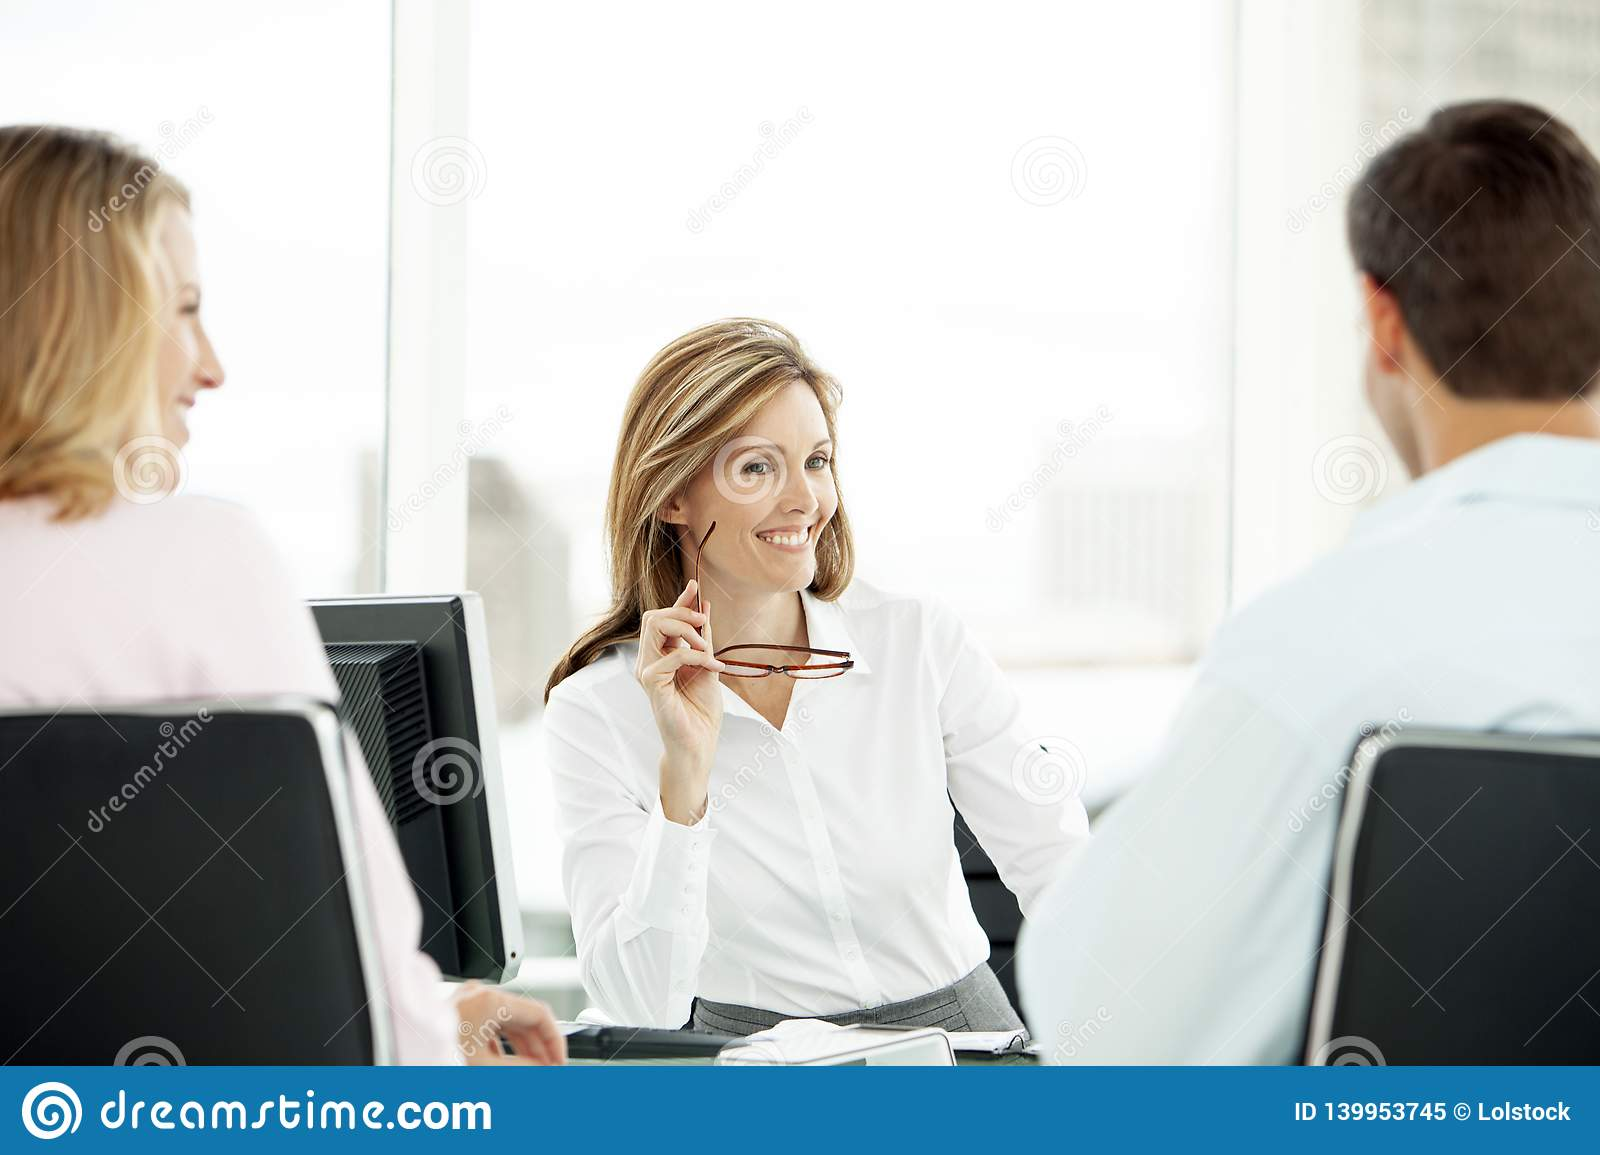 Financial advisor with couple at meeting in office - lawyer providing advice to man and woman - real estate agent with clients